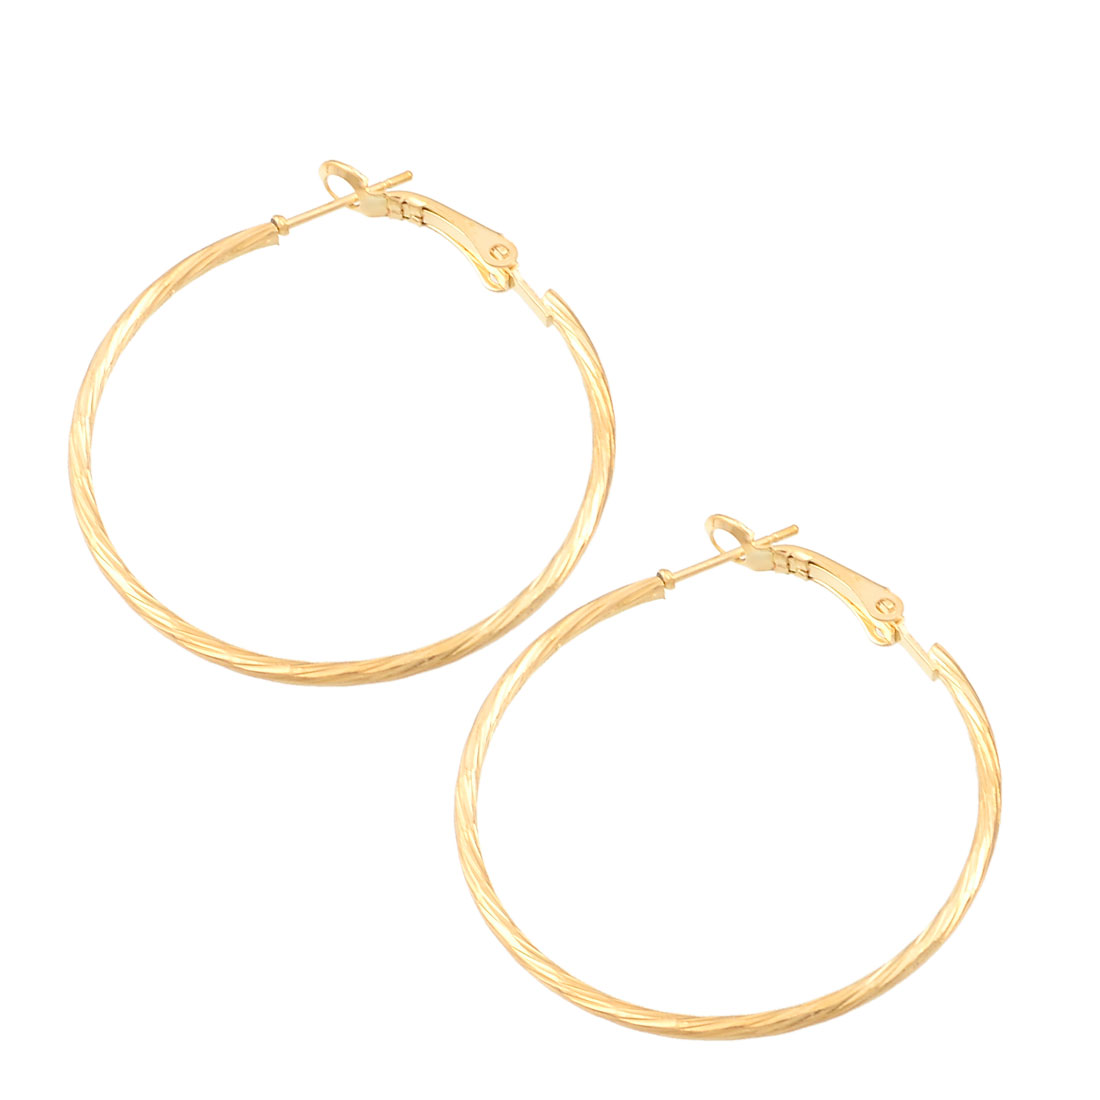 Ladies Twisted Metal Spring Hoop Earrings Present Gold Tone Pair